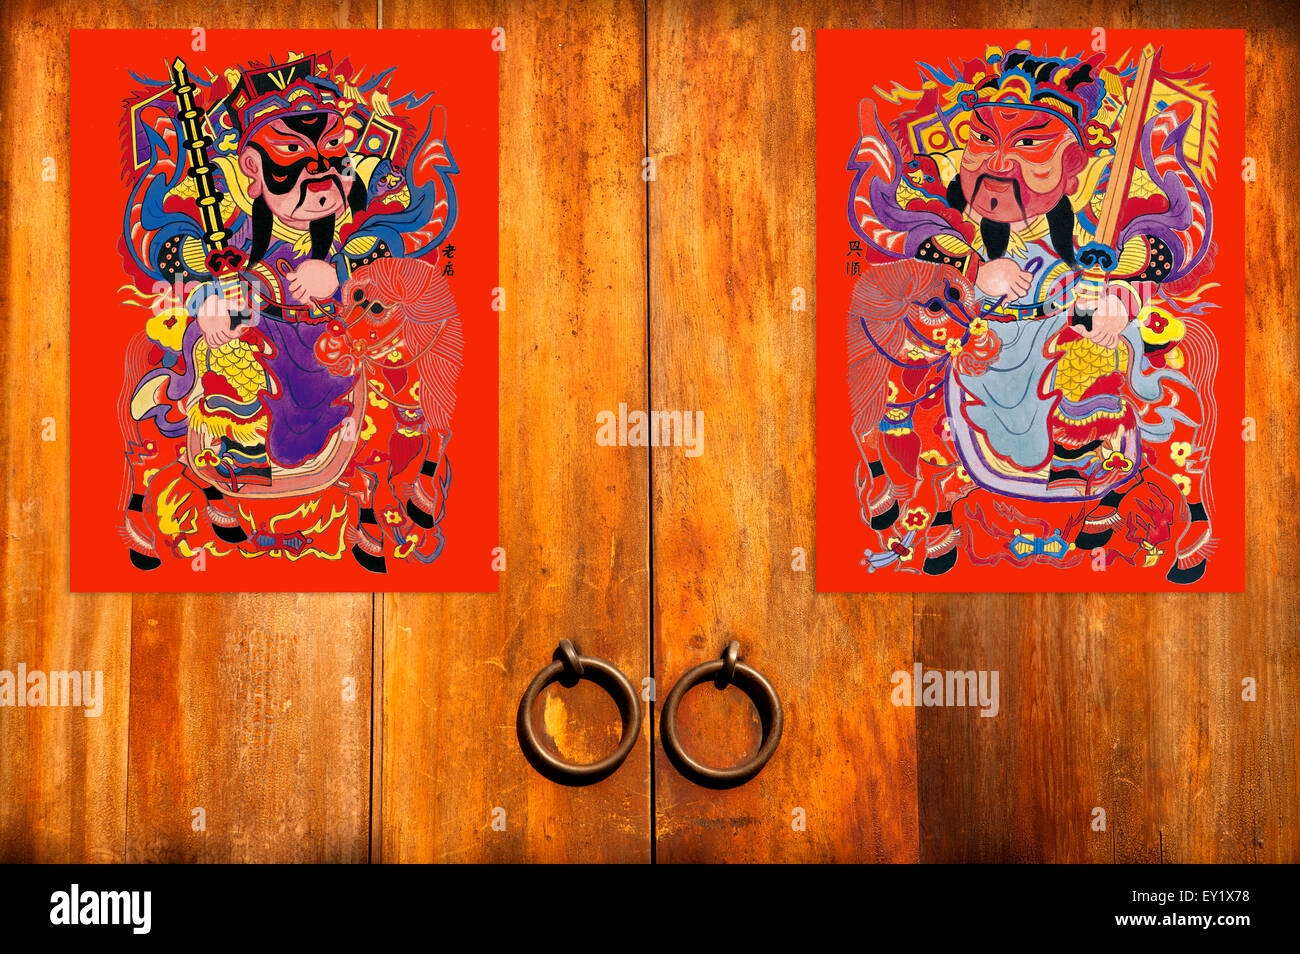 Chinese Door God Luck Chinese Money God  sc 1 st  Alamy : door god - pezcame.com